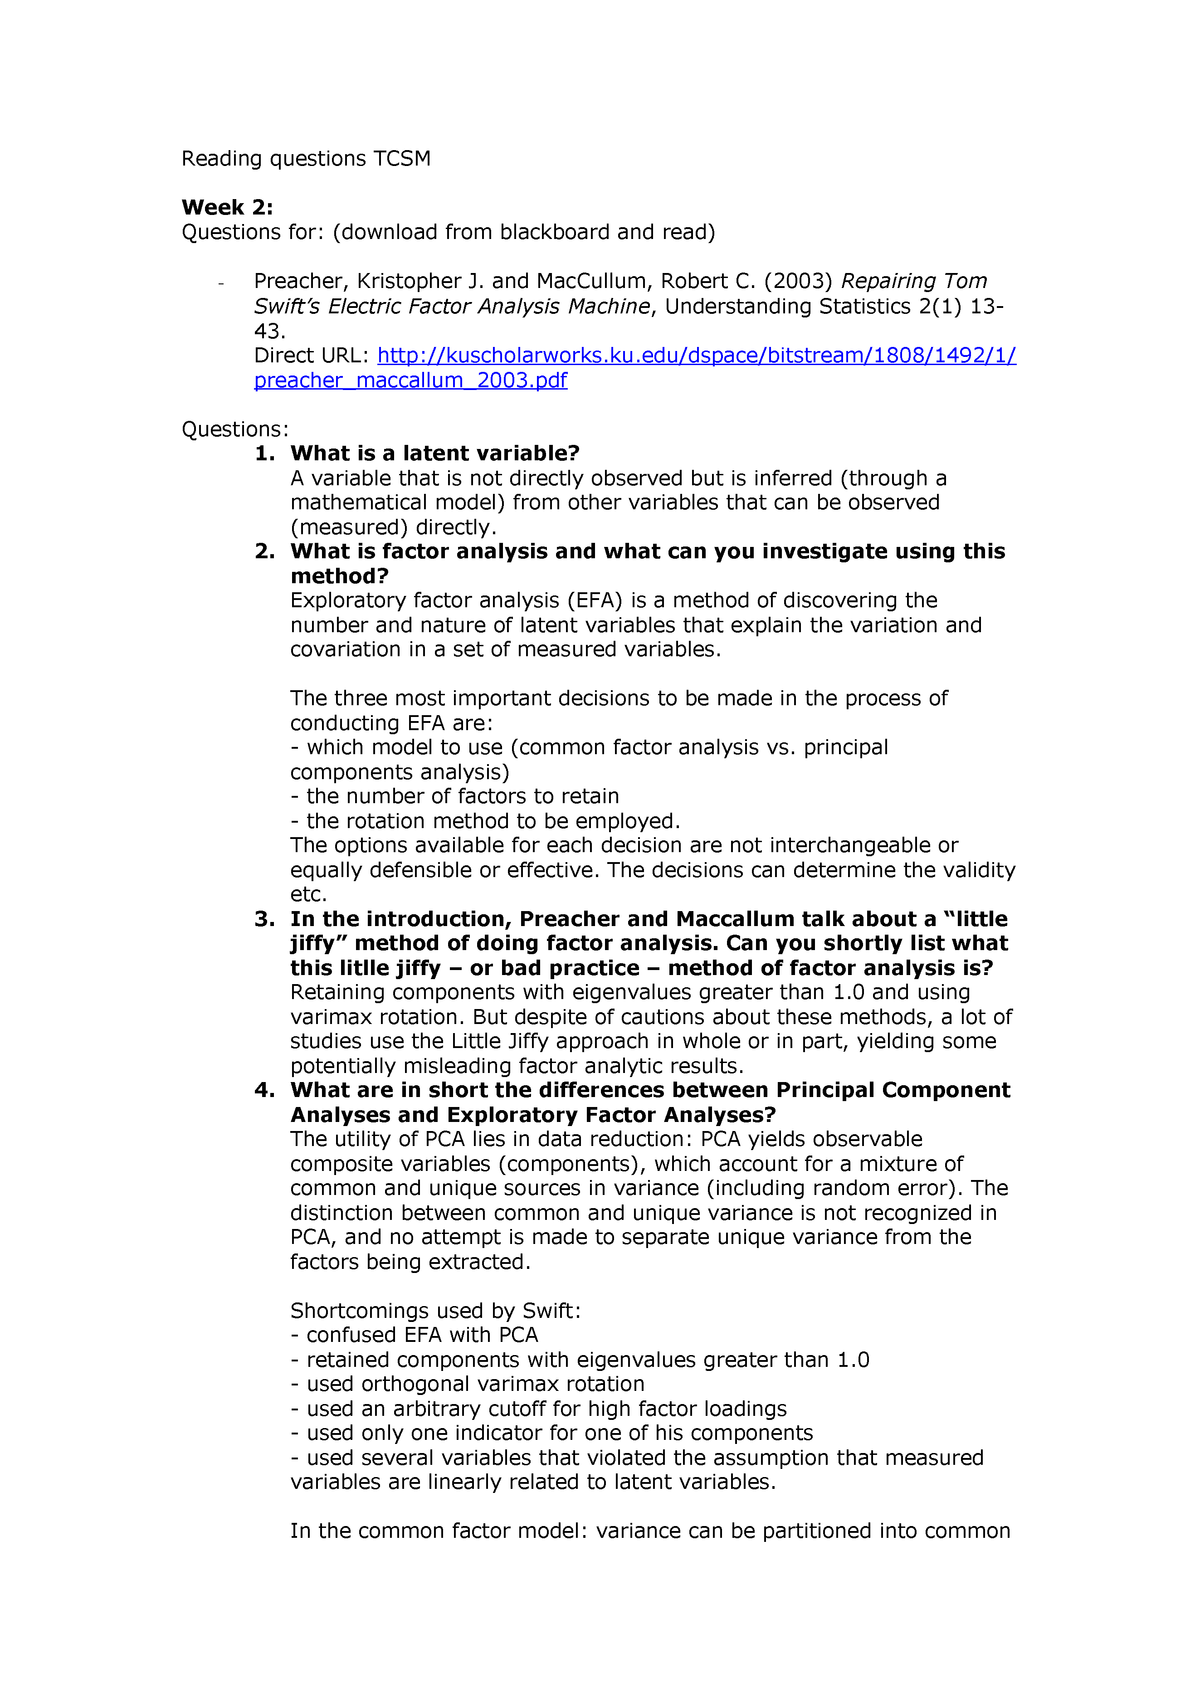 W2 Reading questions TCSM - 200300125: MK: Theory